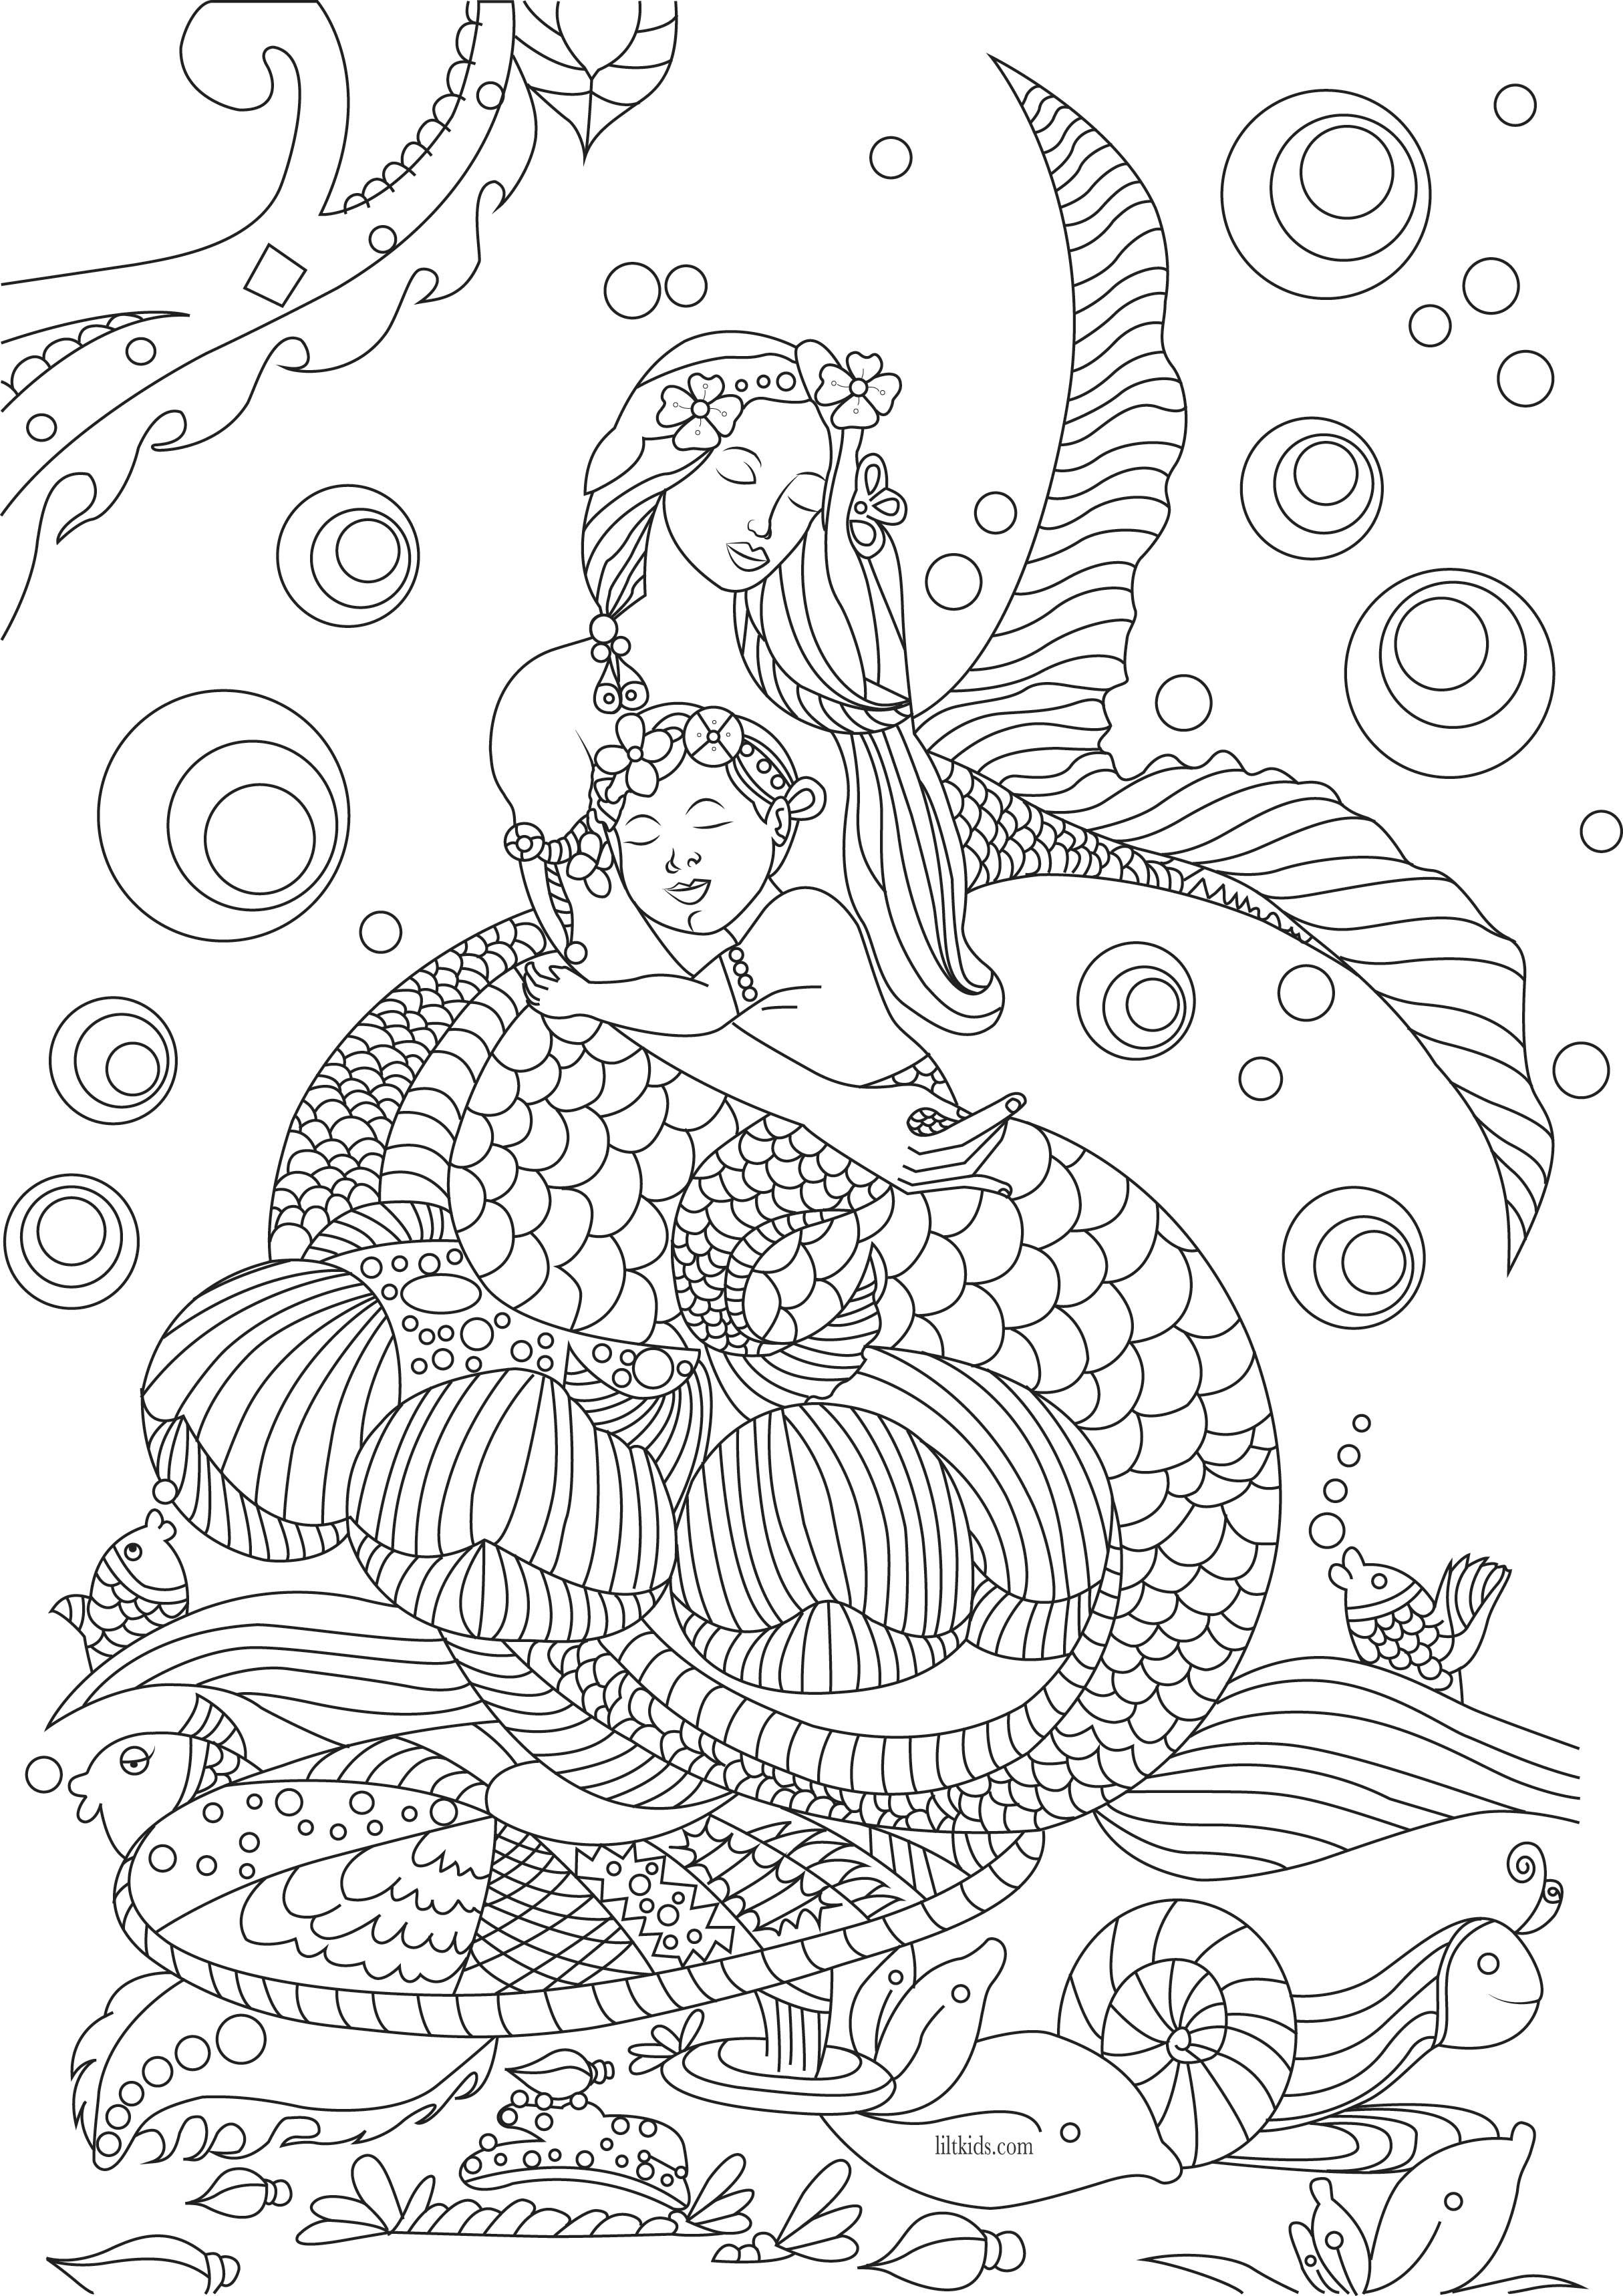 Mermaid coloring pages for adults - Free Beautiful Mermaid Adult Coloring Book Image From Liltkids Com